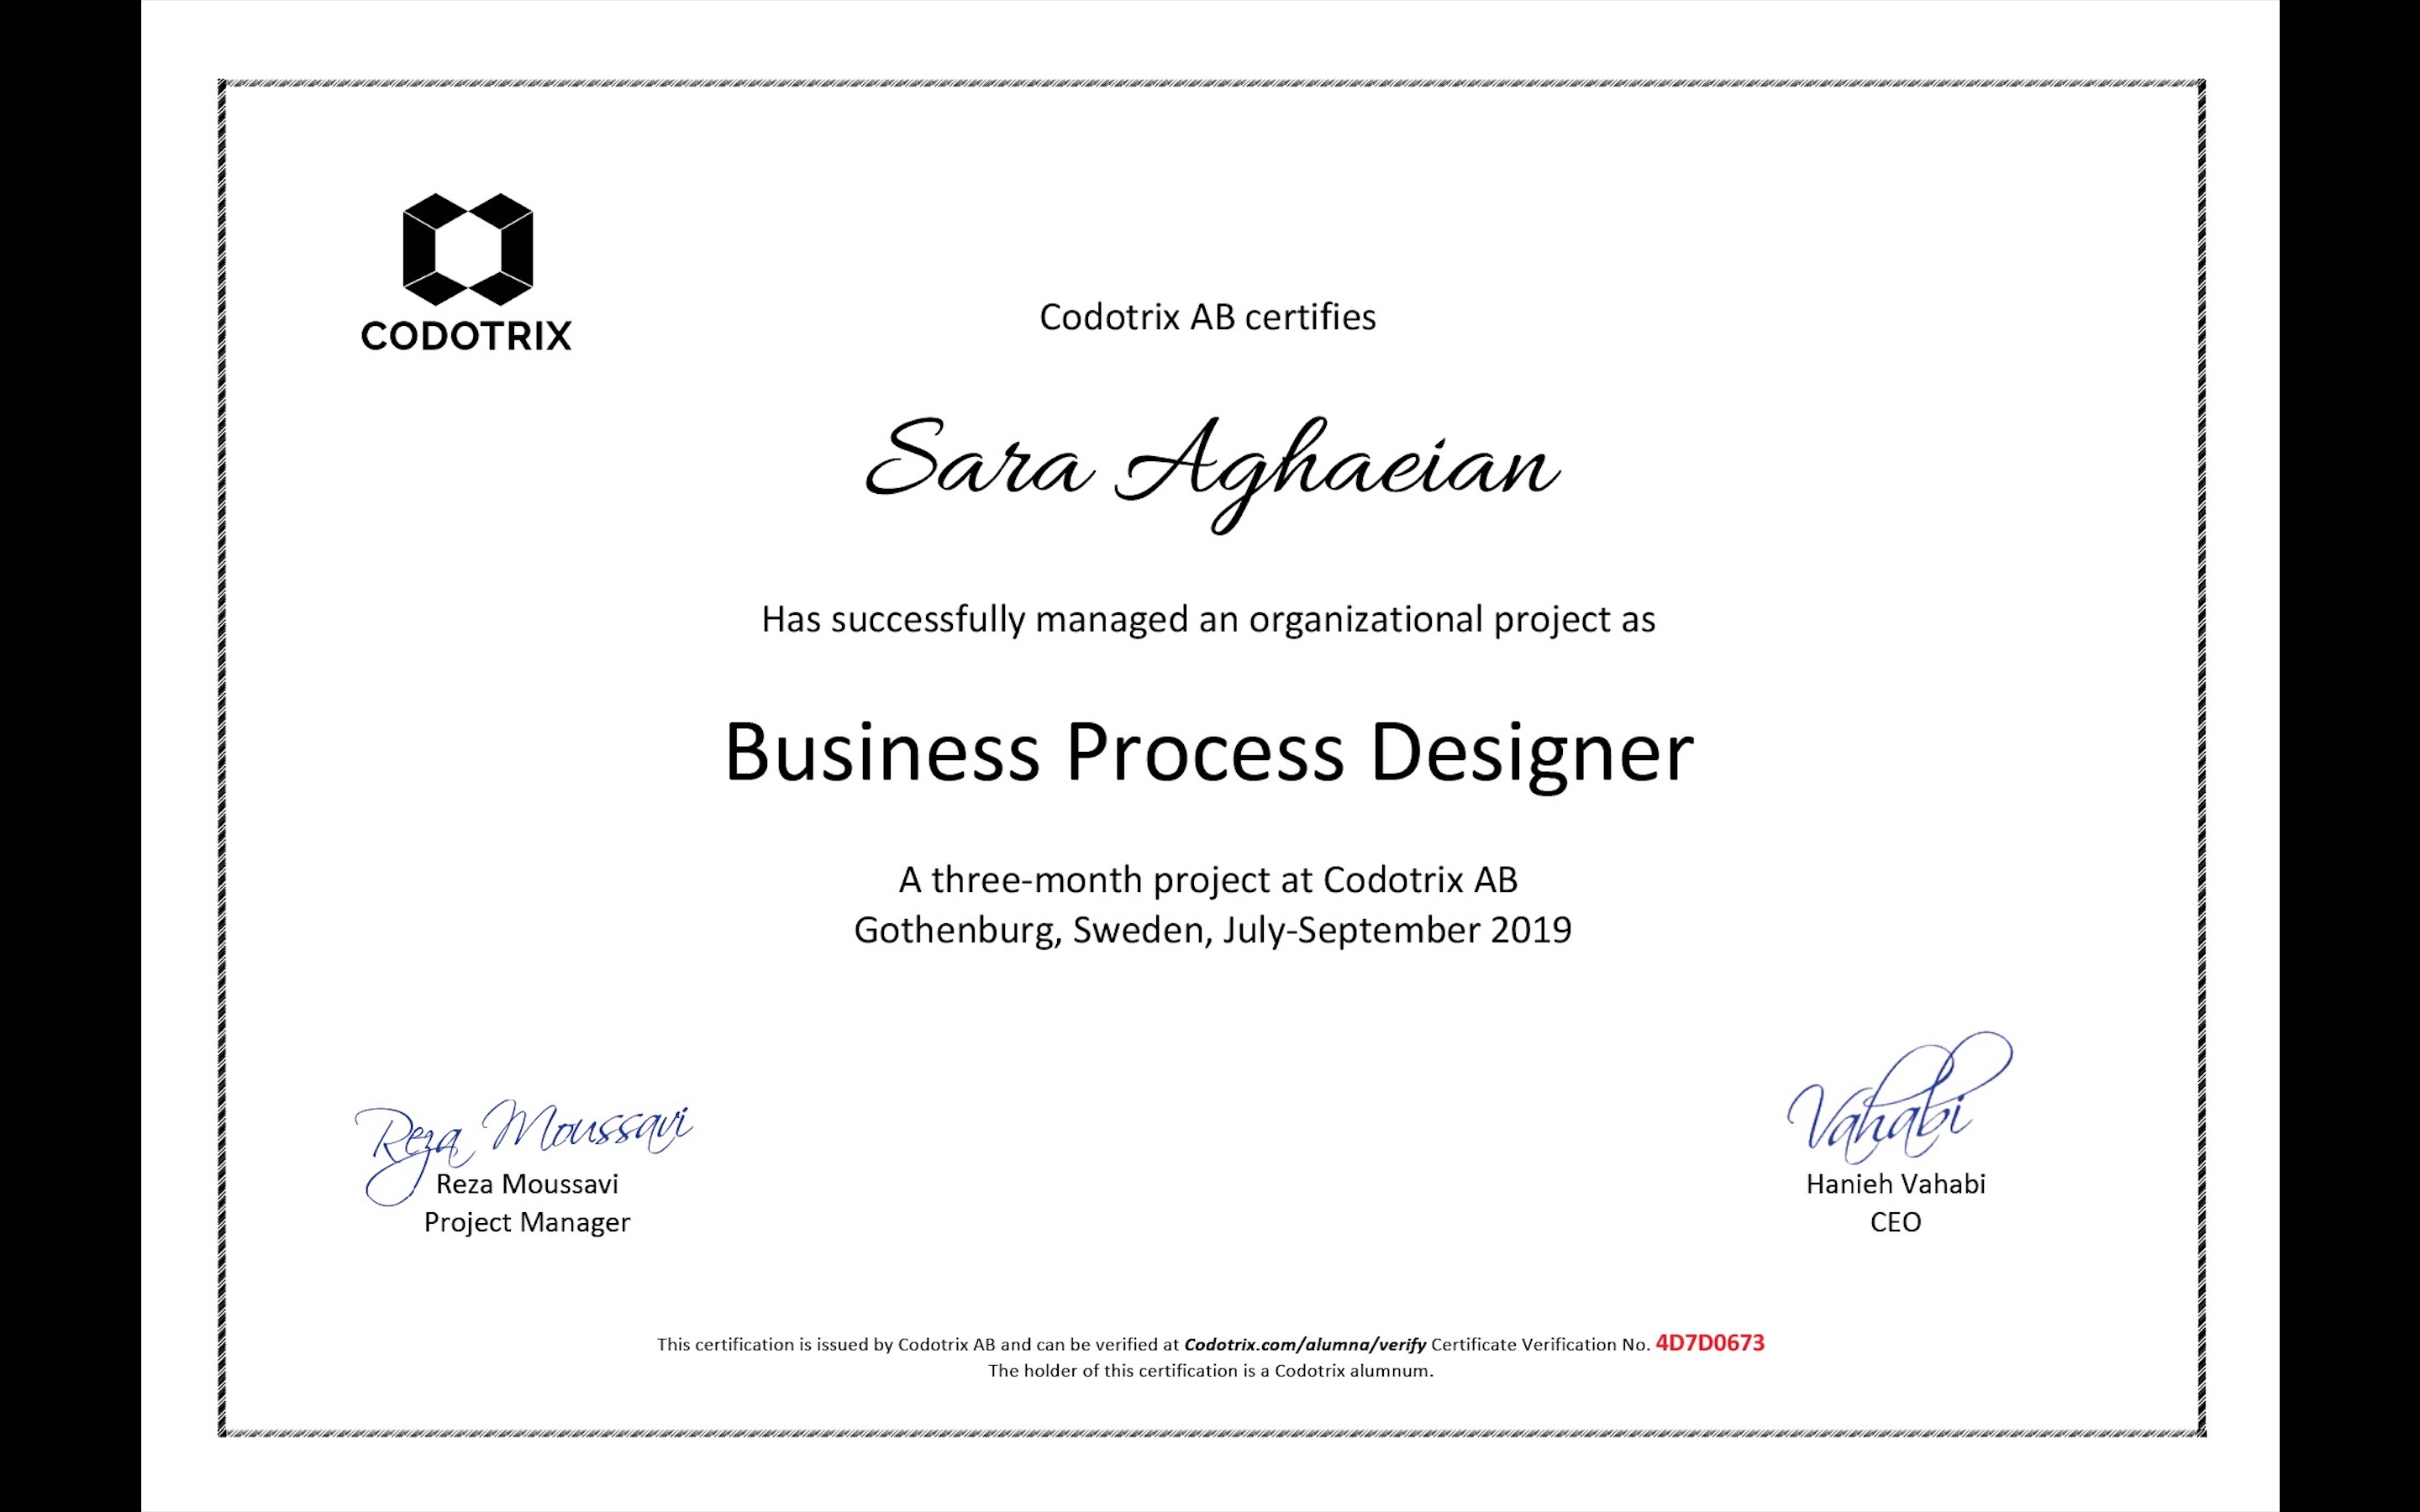 Sara Aghaeian 4D7D0673 Business Process Design